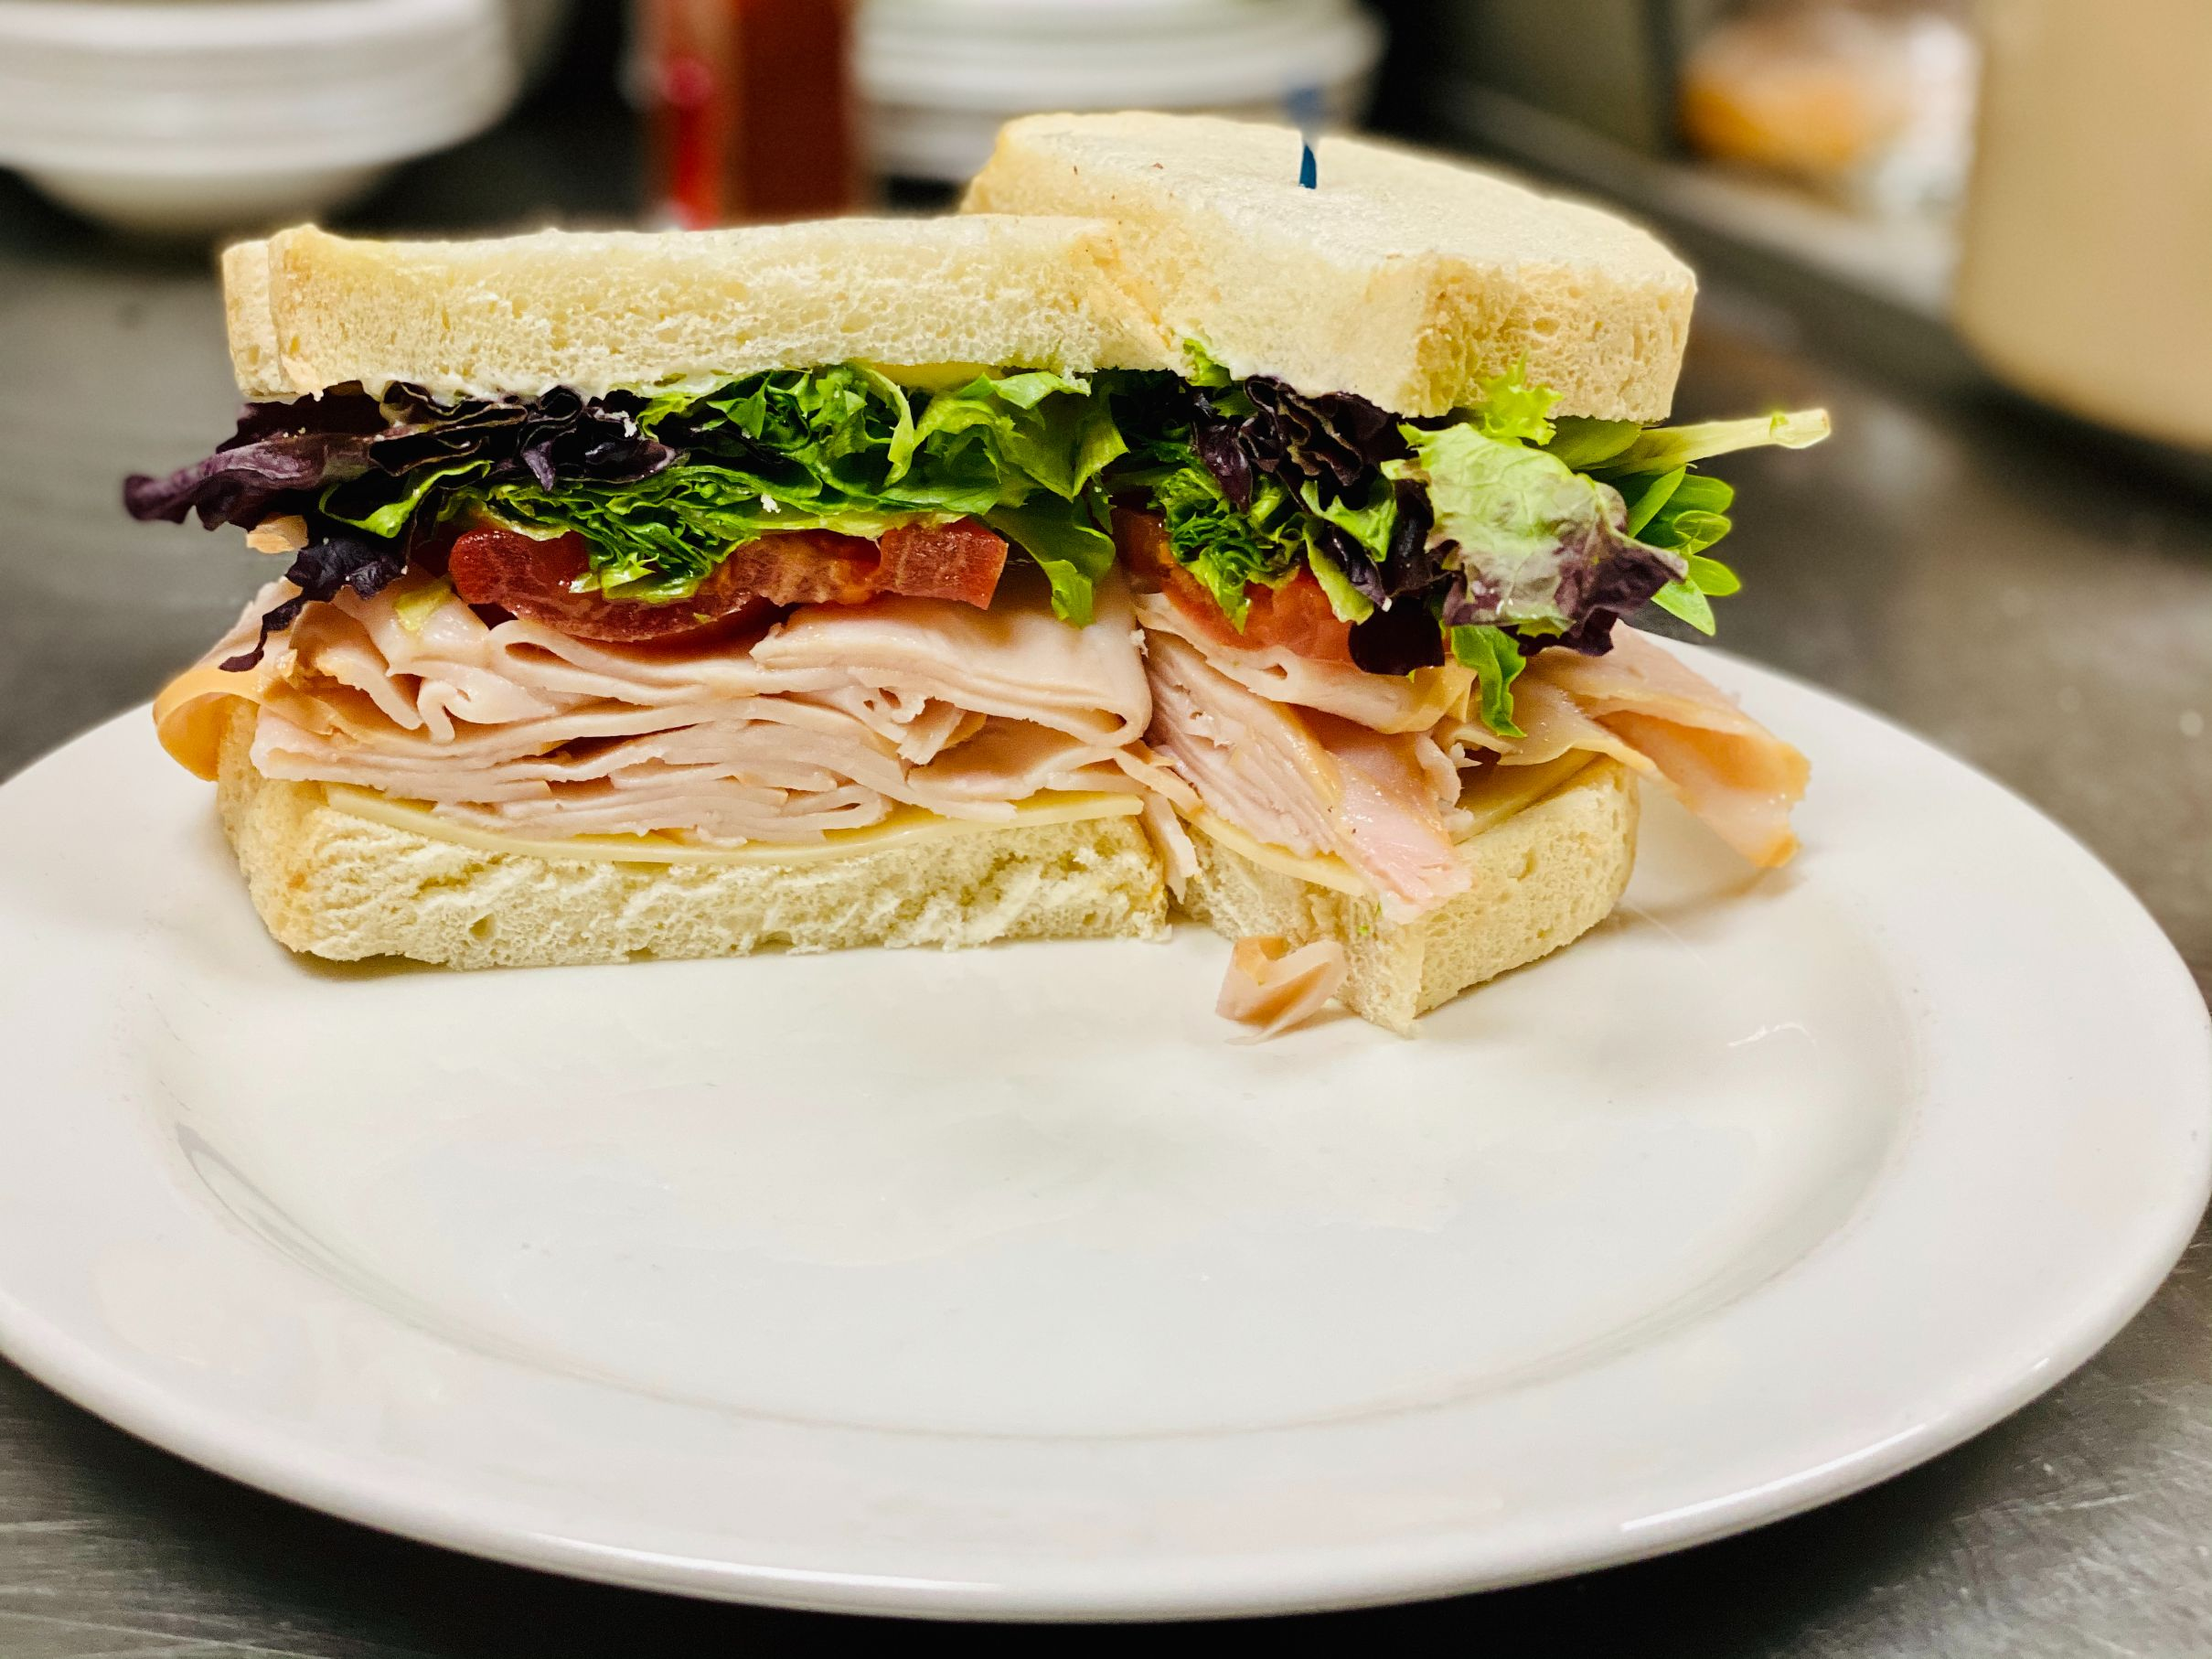 Turkey + Swiss Sandwich: Turkey, Swiss, red onion, spring mix, tomato, dijon mustard, and mayonnaise